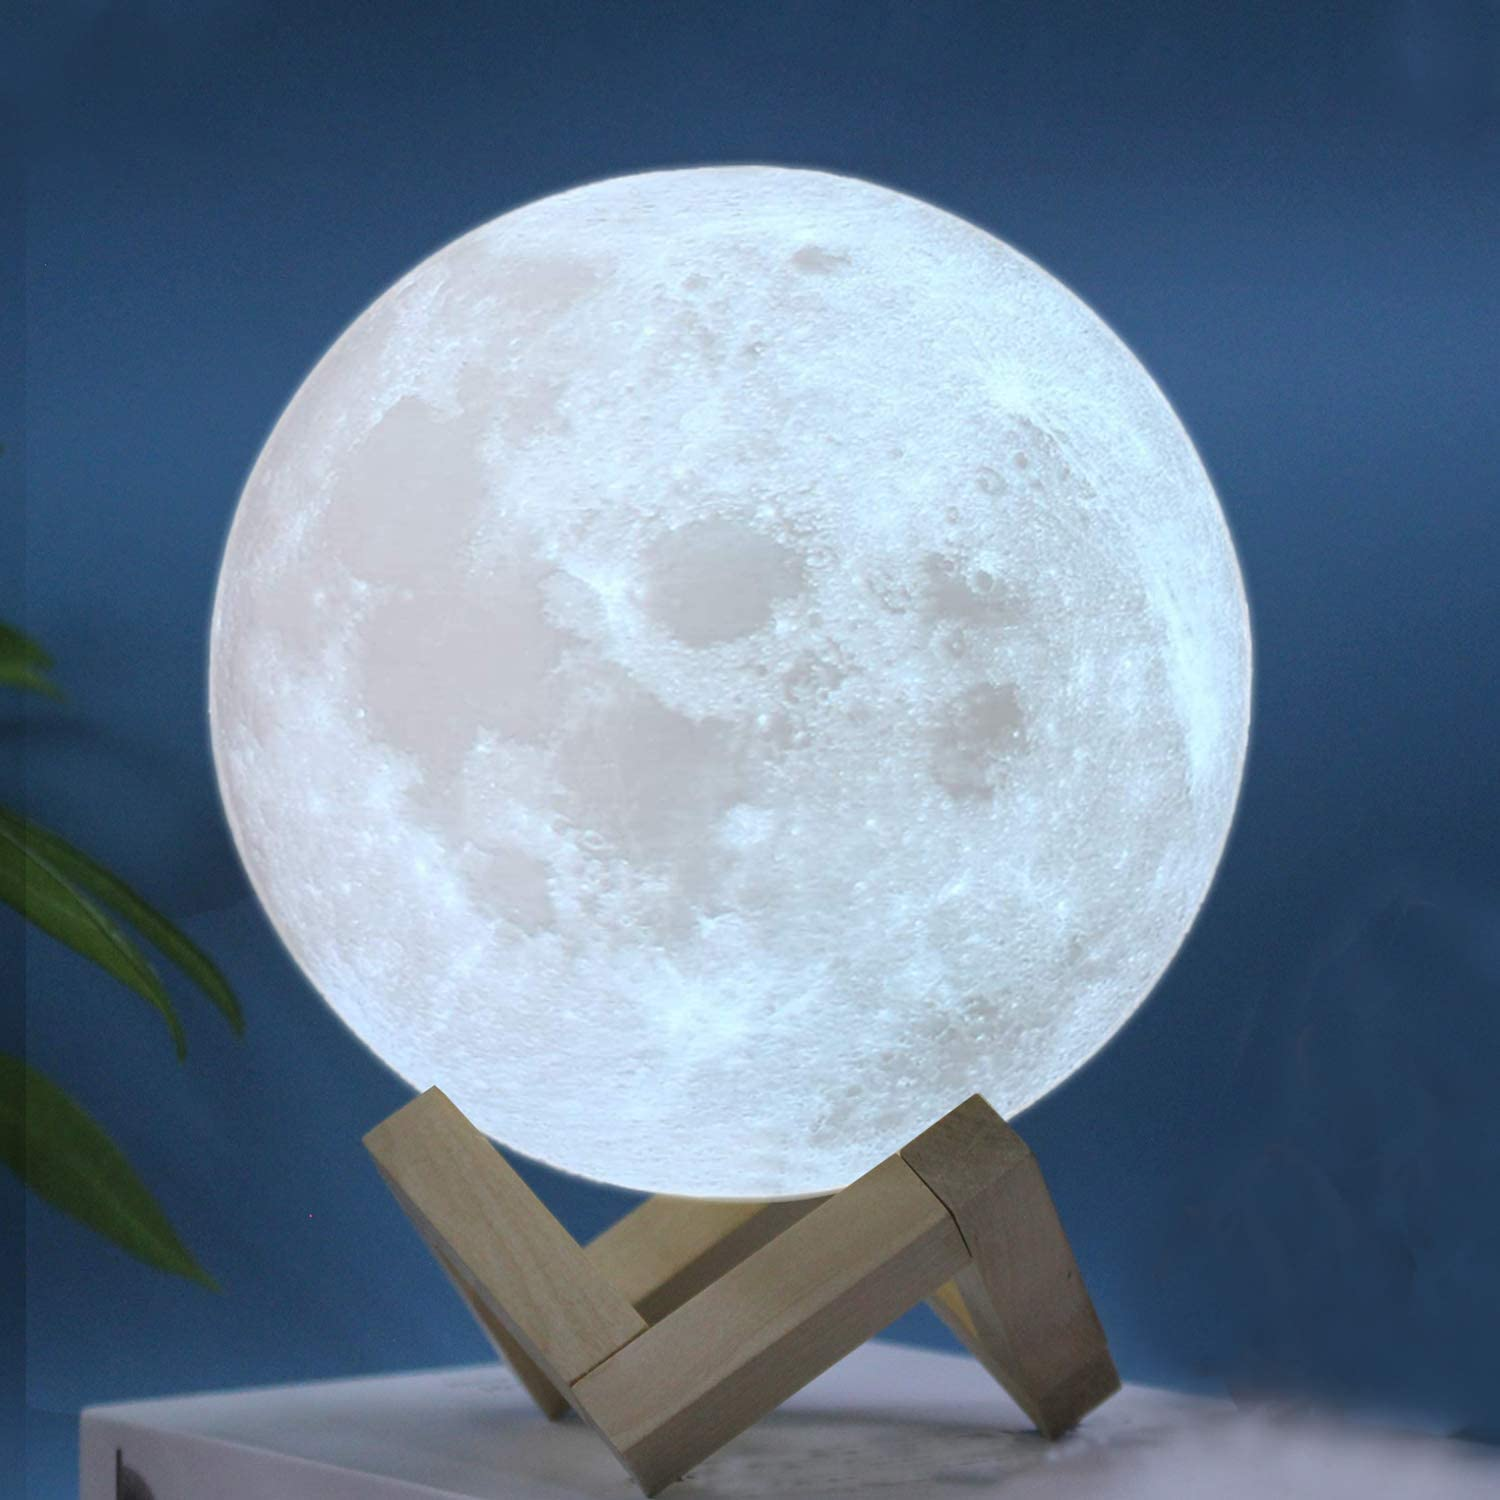 RMFSH Moon Lamp Ranking TOP15 7.9inch for Ligh 3Colors Bedrooms shipfree